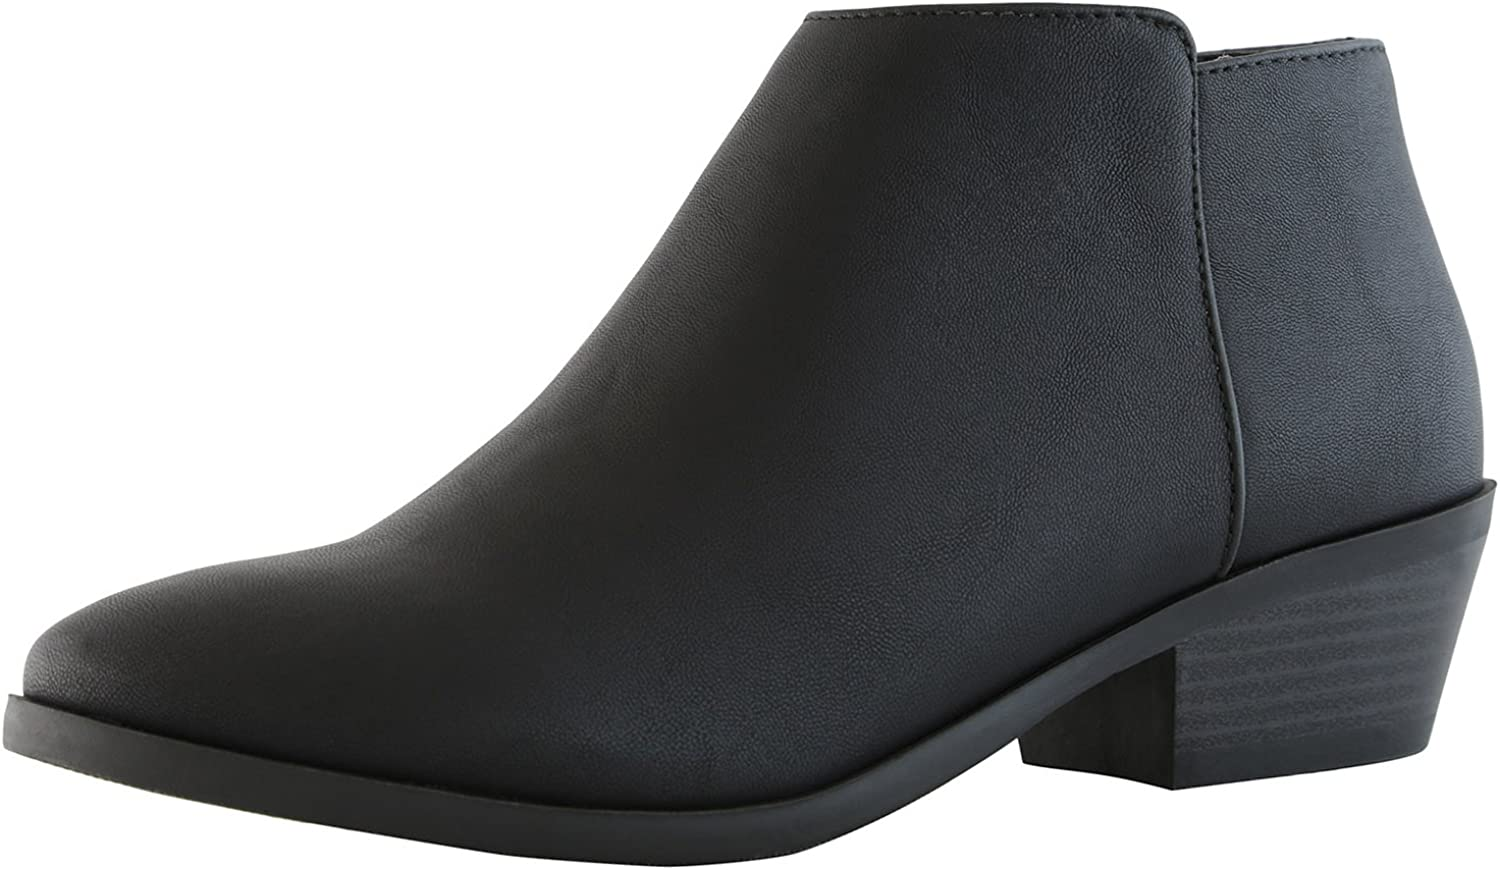 DailyShoes Women's Western Cowboy Bootie - Ultra Comfortable Chayo-01